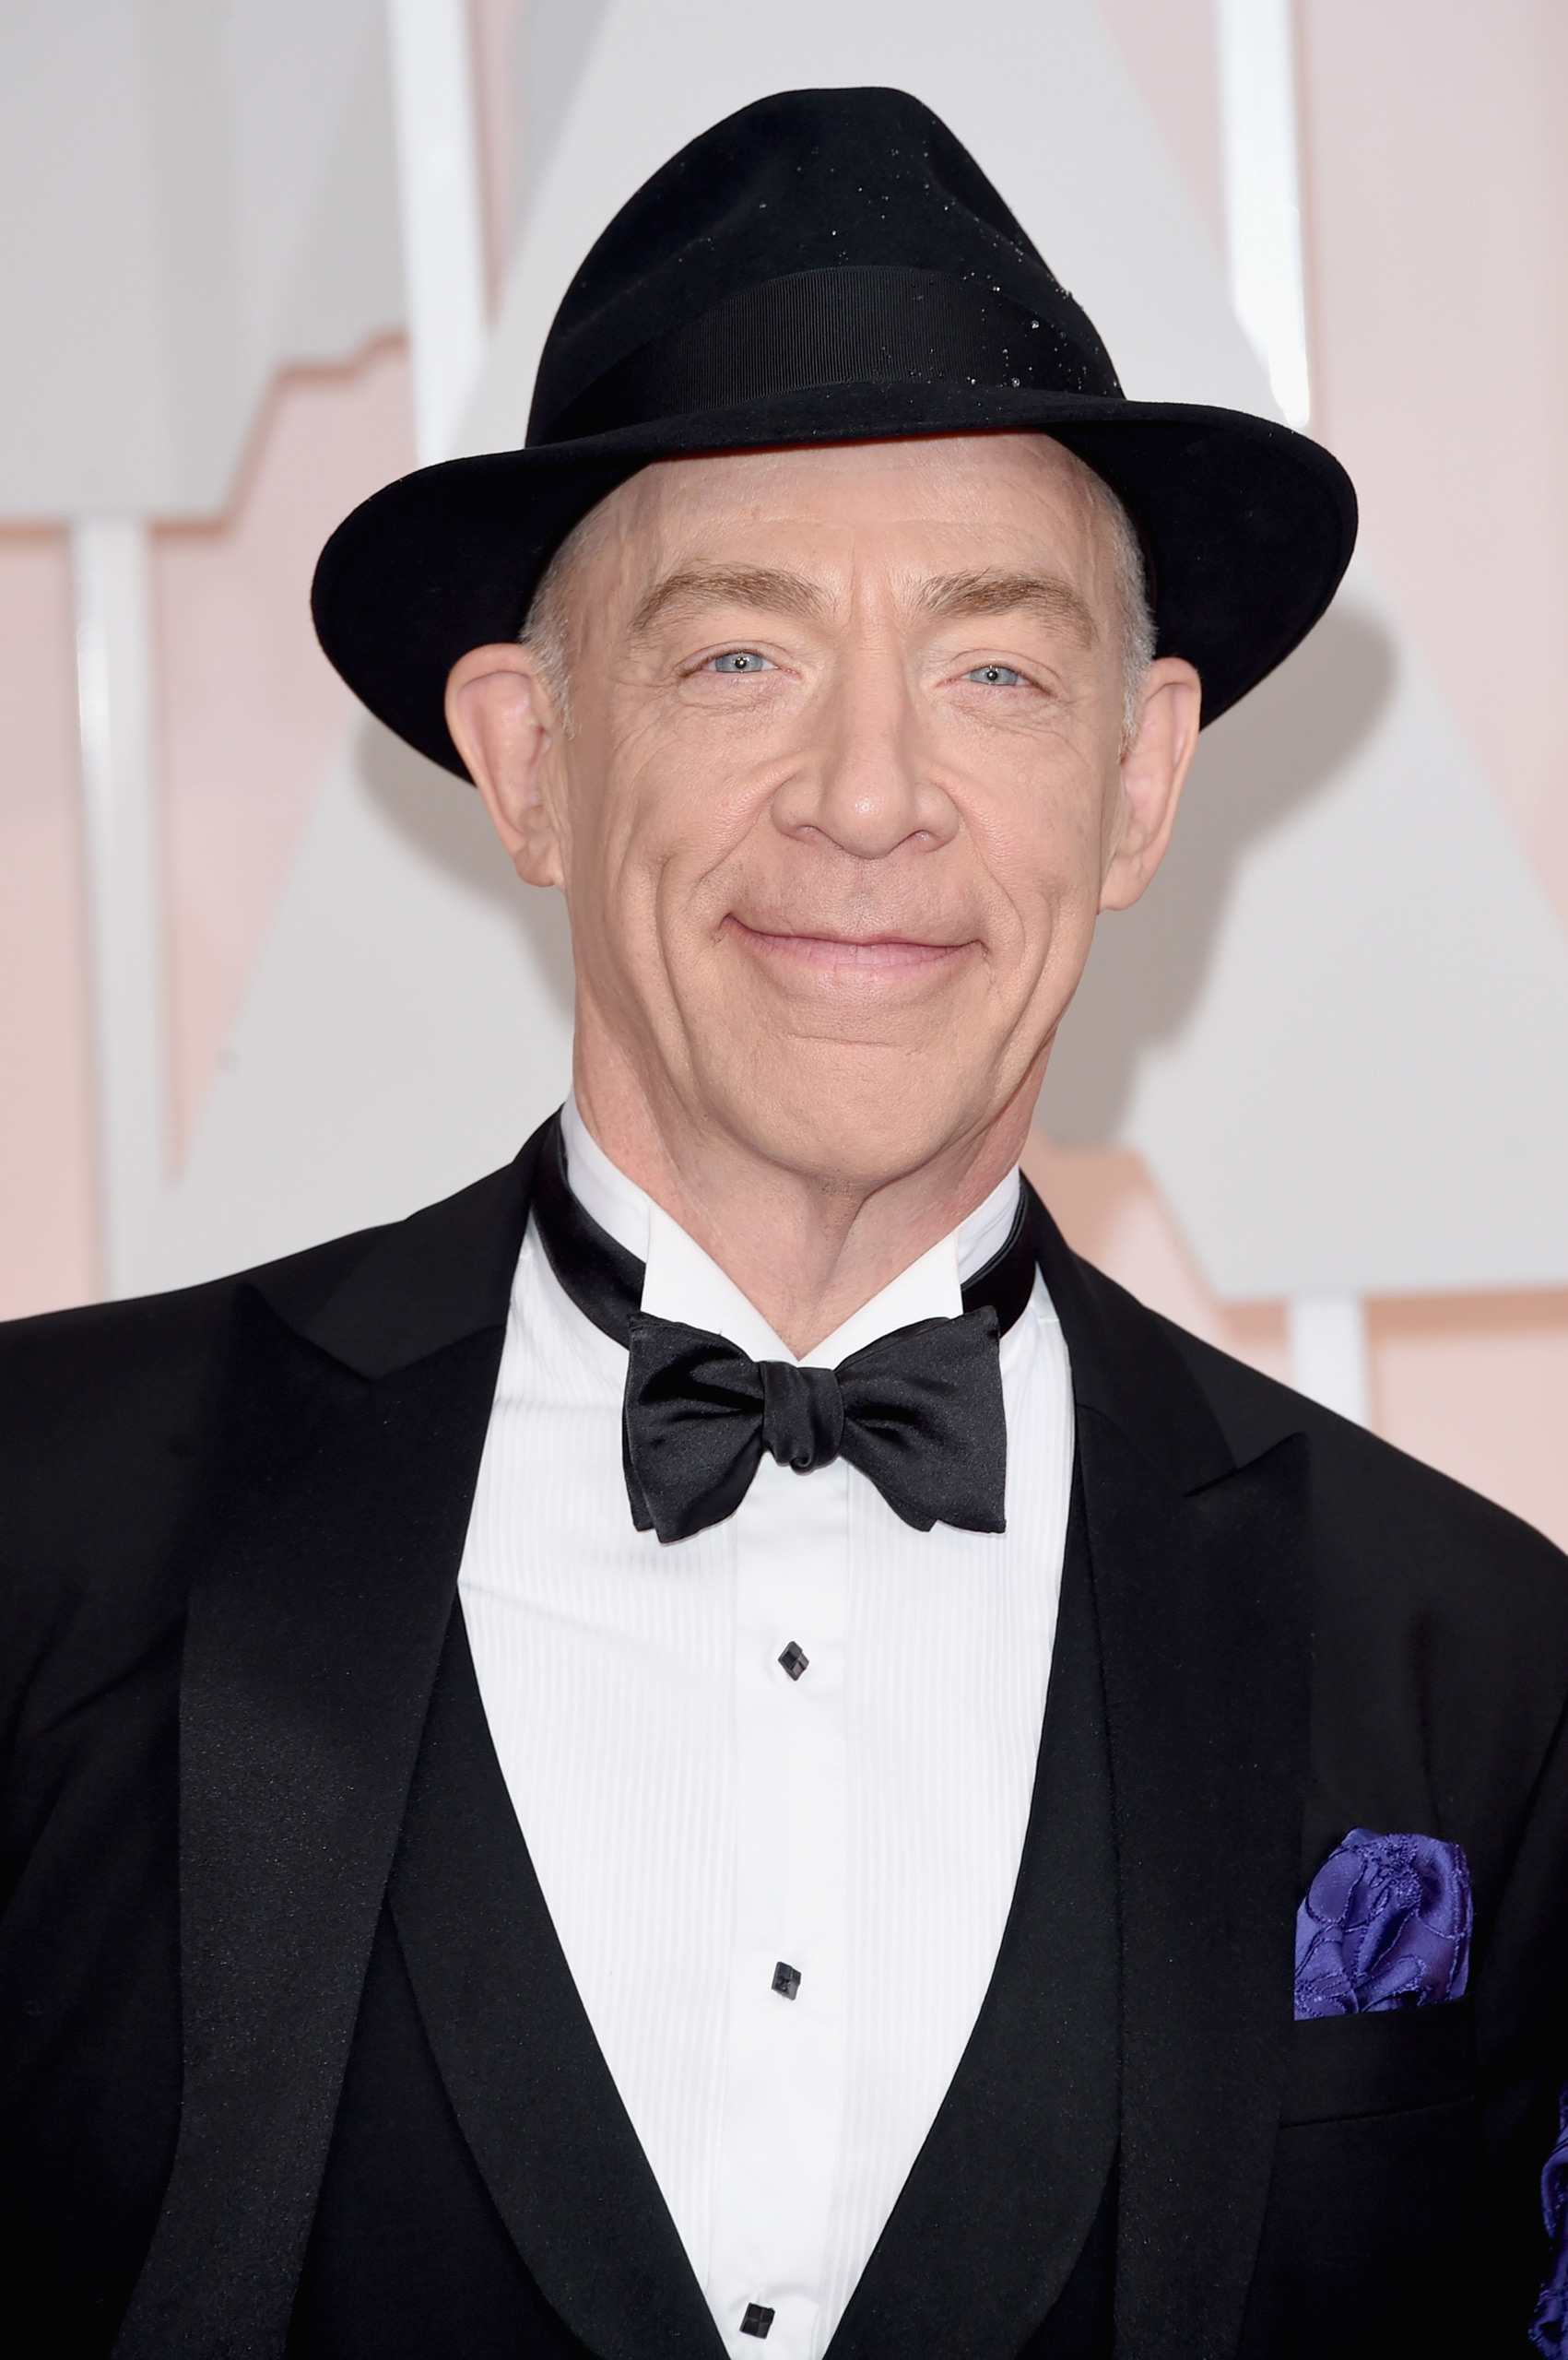 J.K. Simmons attends the 87th Annual Academy Awards on Feb. 22, 2015 in Hollywood, Calif.